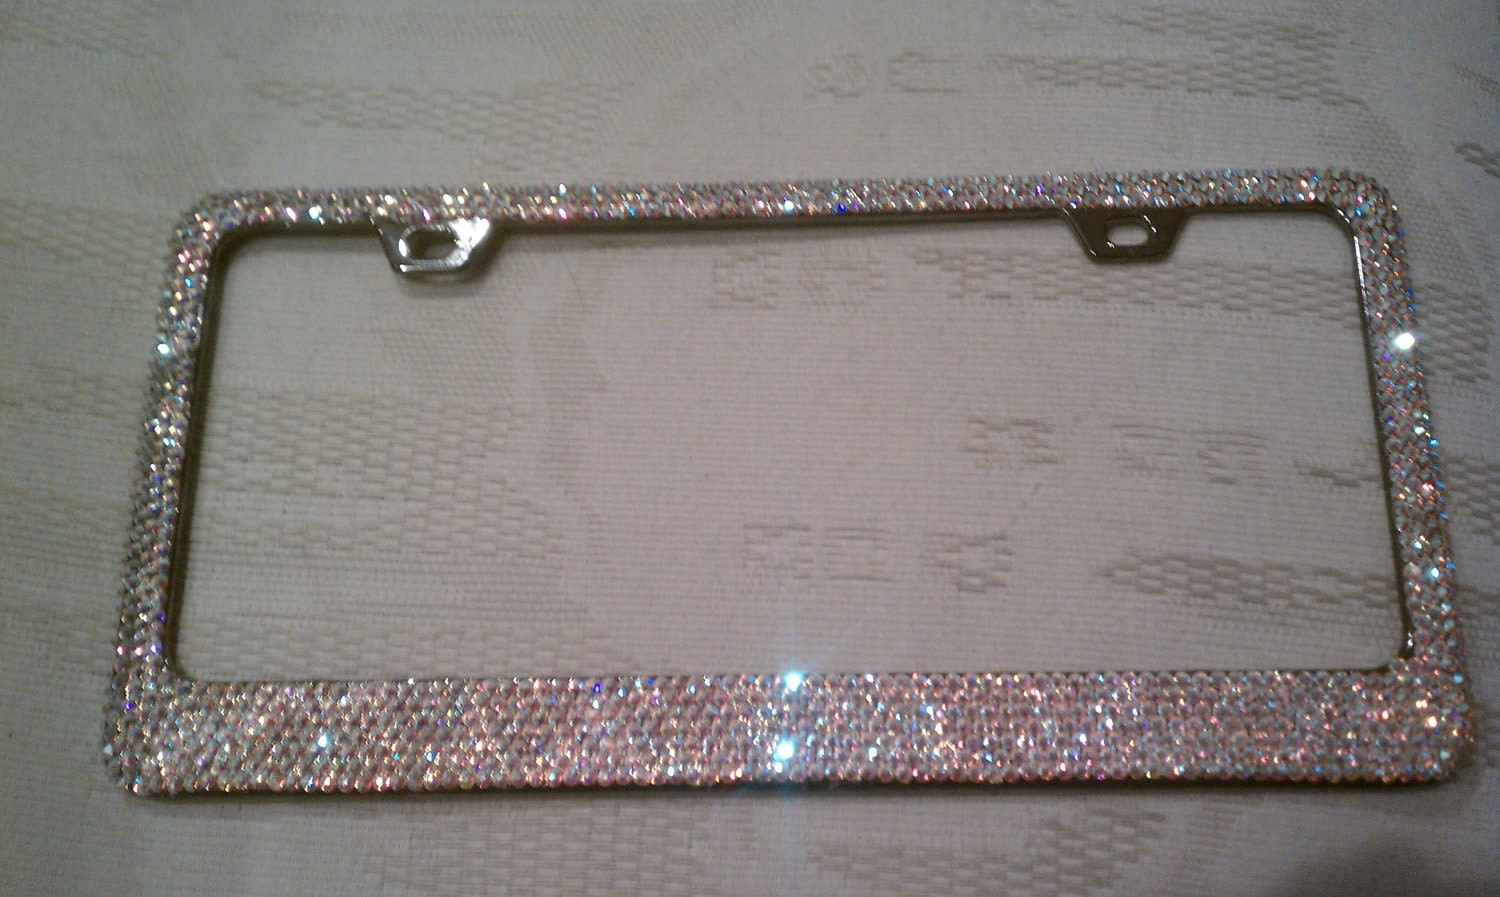 swarovski crystal ab license plate frame zoom